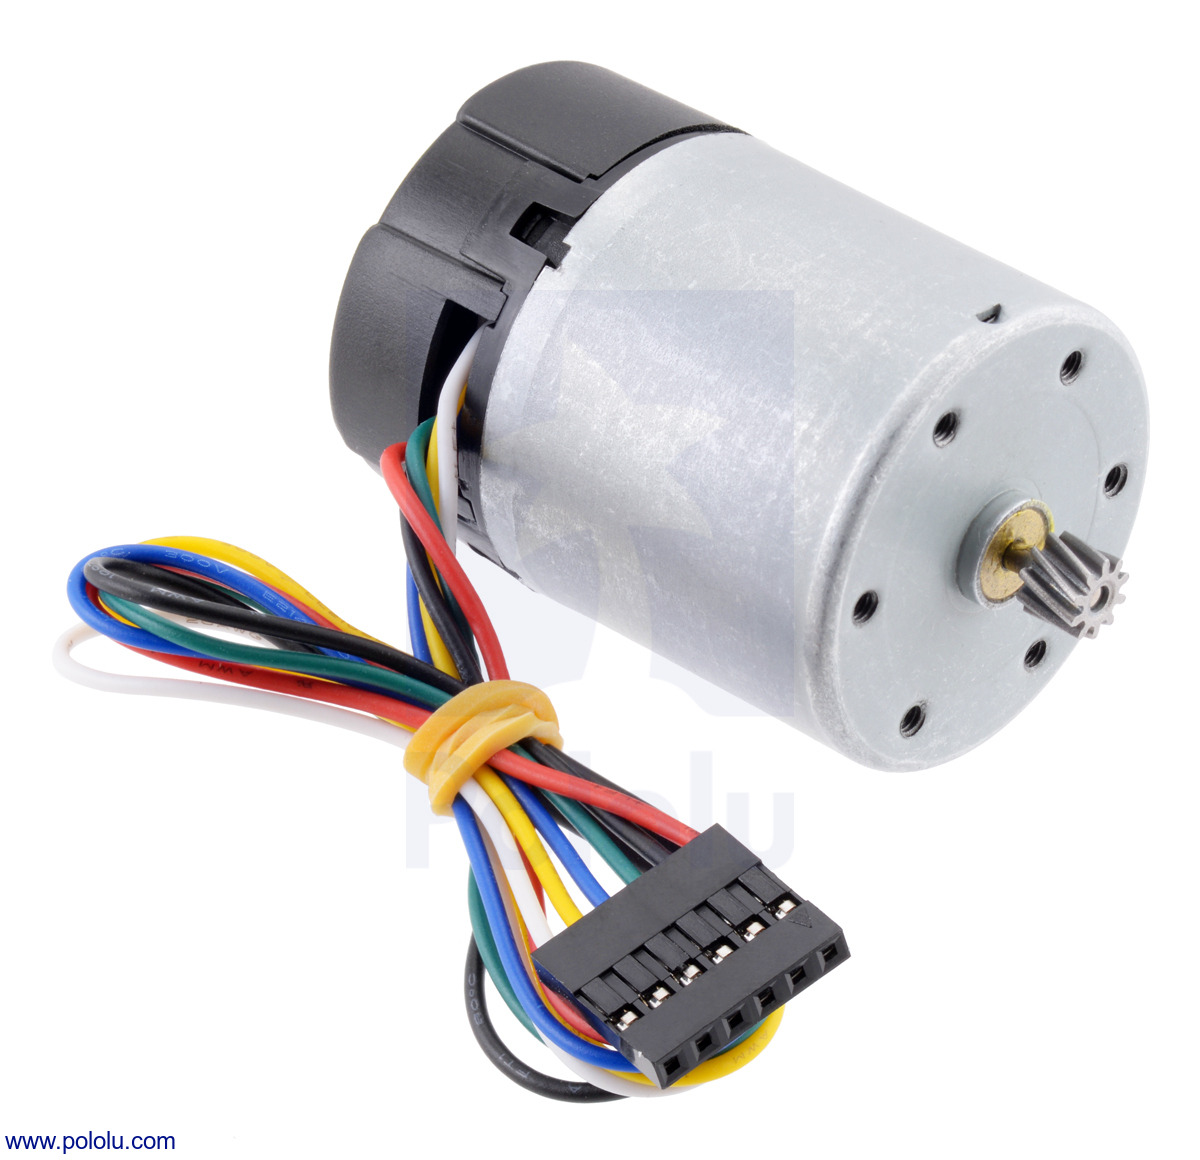 50:1 Metal Gearmotor 37Dx70L mm with 64 CPR Encoder (Spur Pinion)